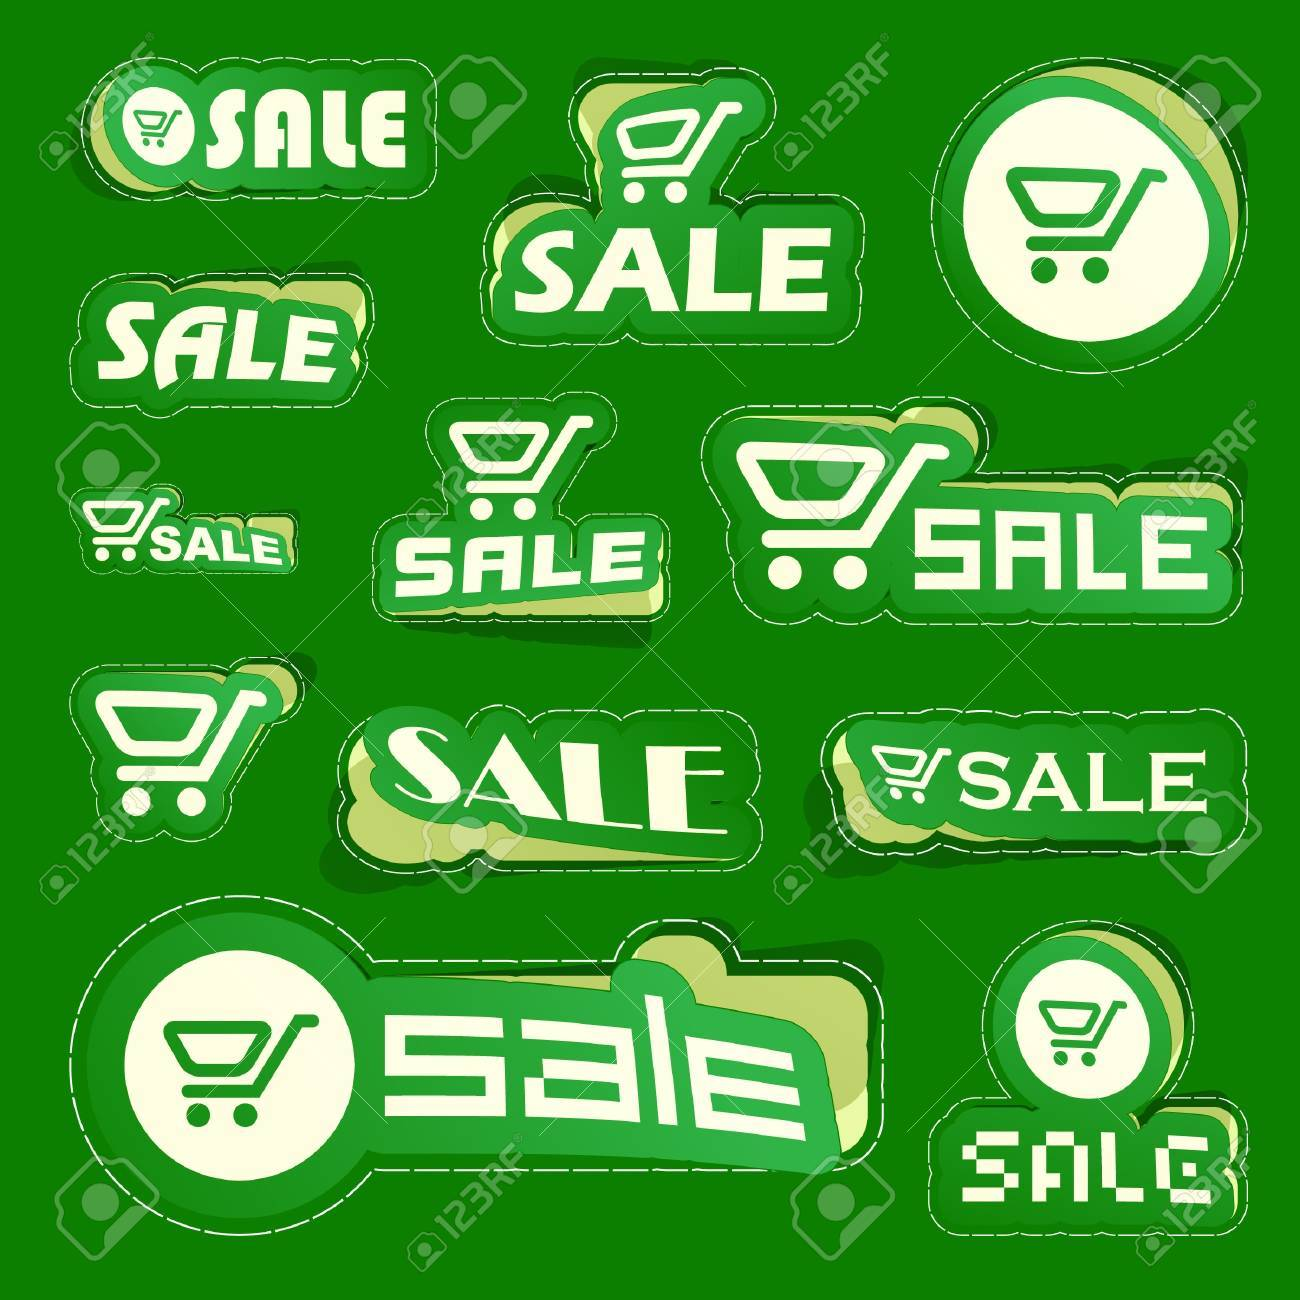 SALE. Shopping cart. Vector sticker set. Stock Vector - 9022021